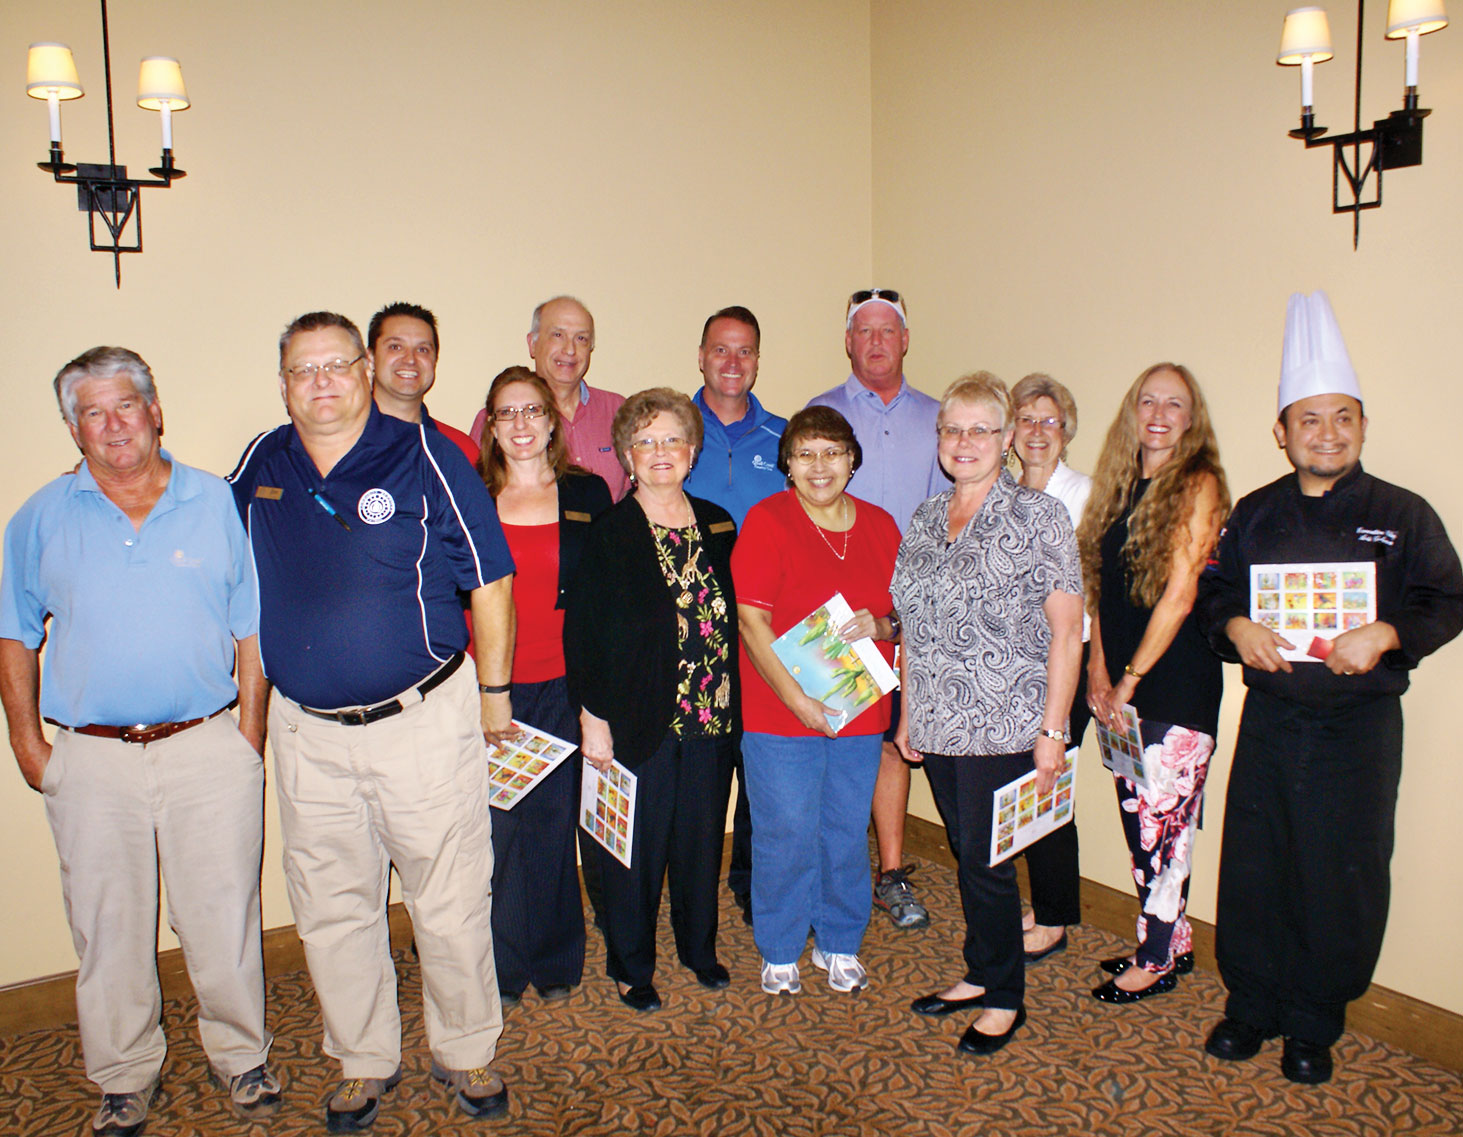 Some employees gather for a photo at the 2015 Employee Appreciation Event. We are asking for your help to make our 2016 event even better!